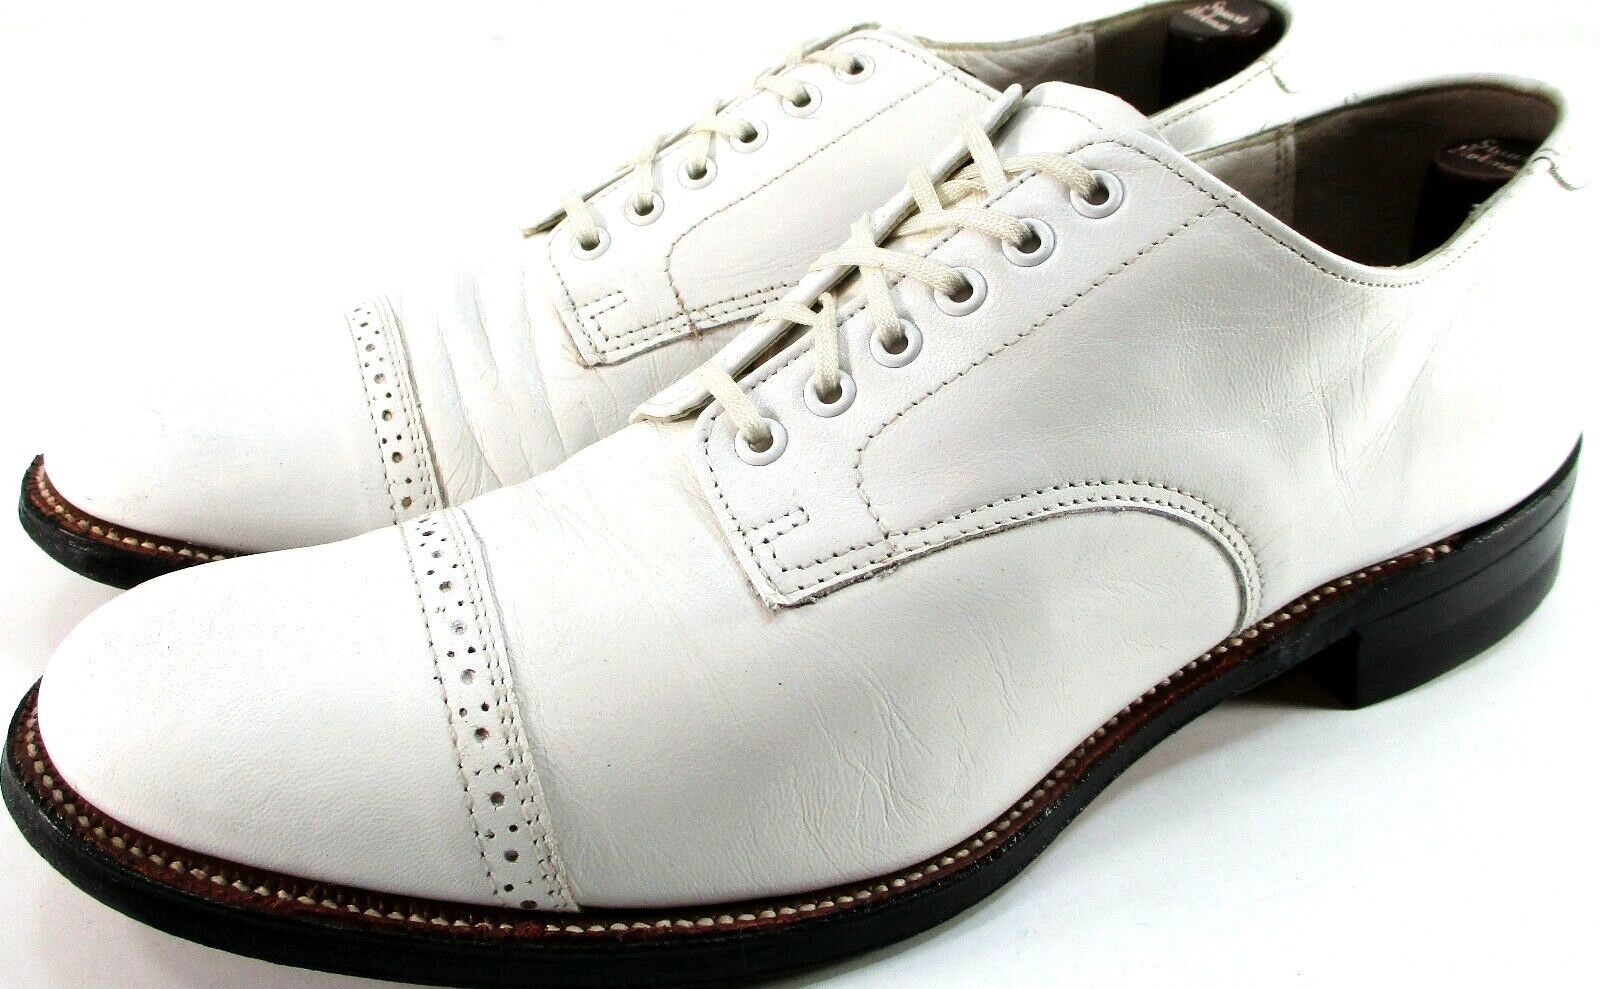 Stacy Adams Men Cap Toe Oxford shoes Size 8D White Brogue Leather Sole & Lined